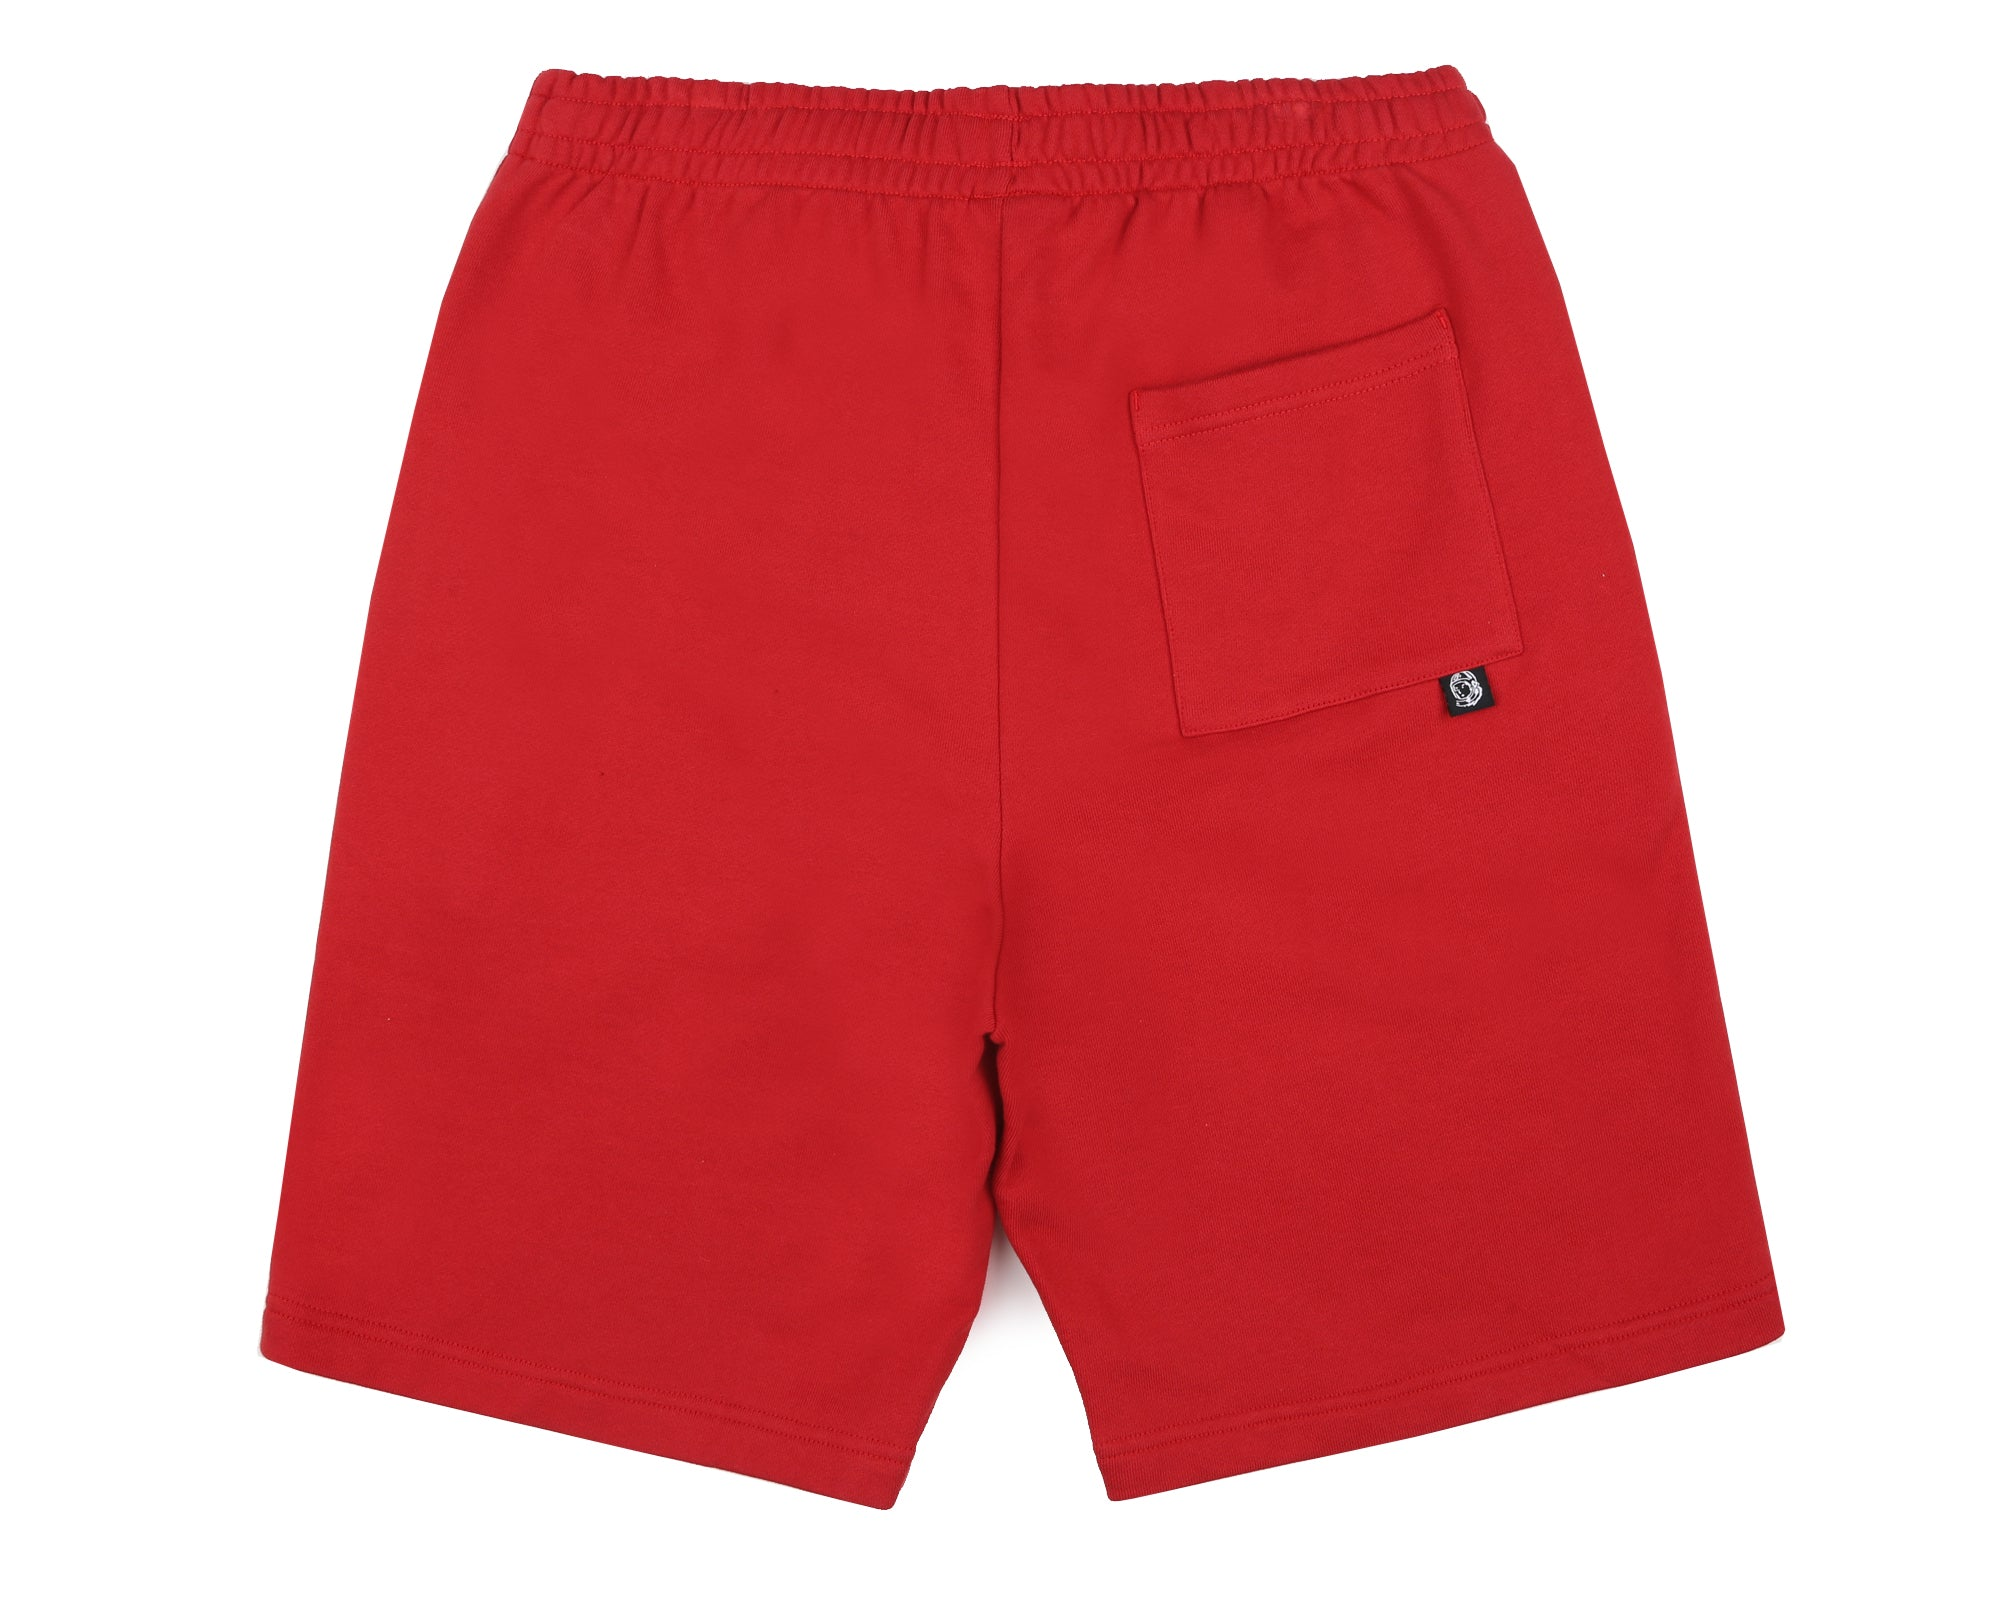 PLEATED SWEATSHORT - RED